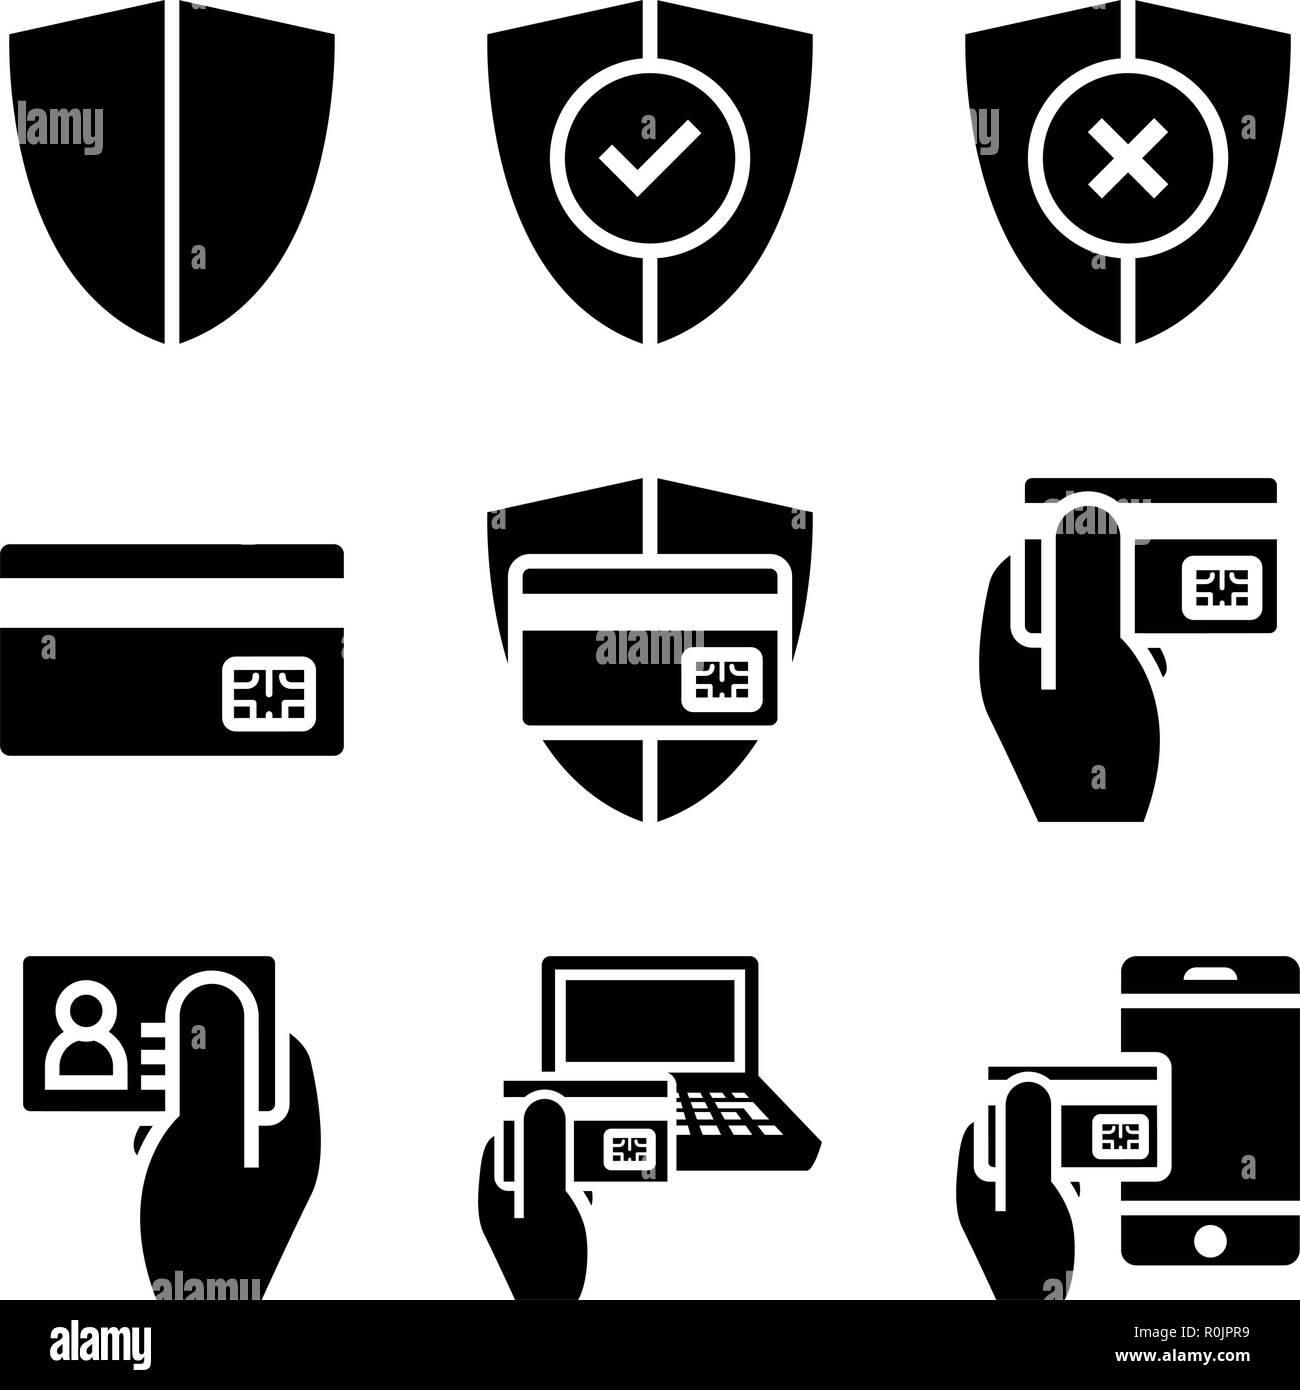 Secure Shopping Online - Stock Vector